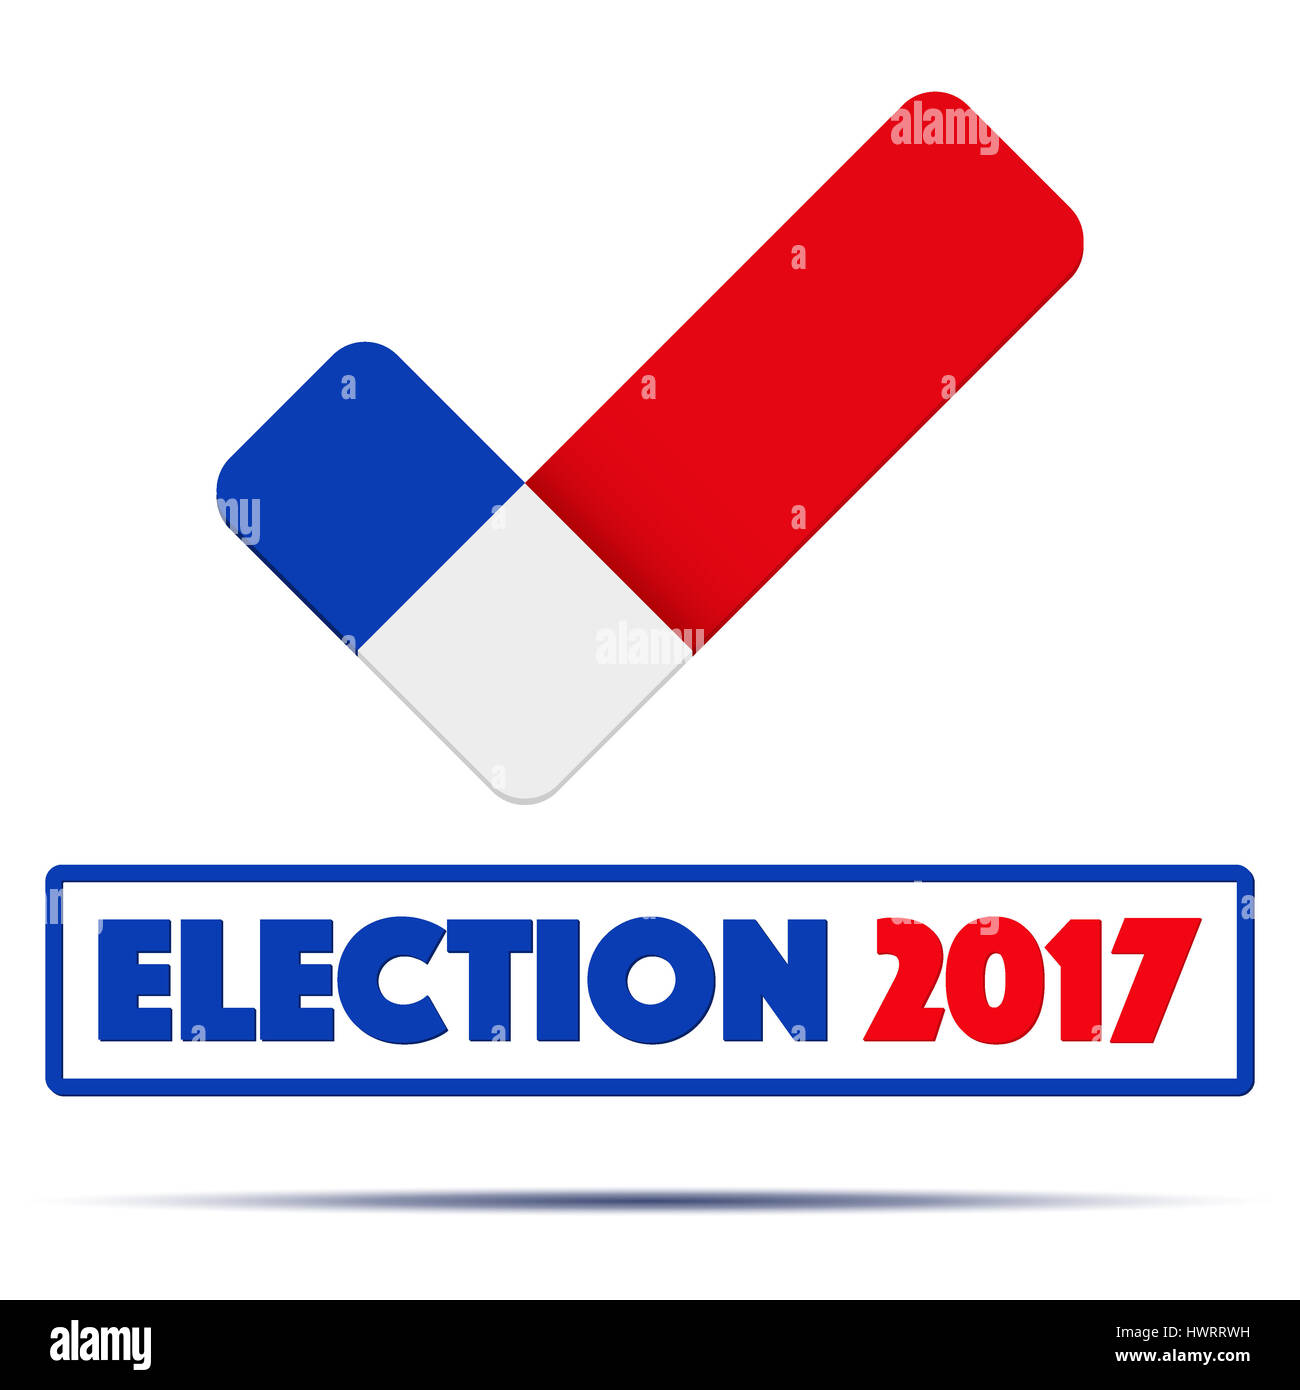 Symbol of election 2017 in france check mark symbol in the form of symbol of election 2017 in france check mark symbol in the form of french flag politics illustration isolated on white background biocorpaavc Image collections